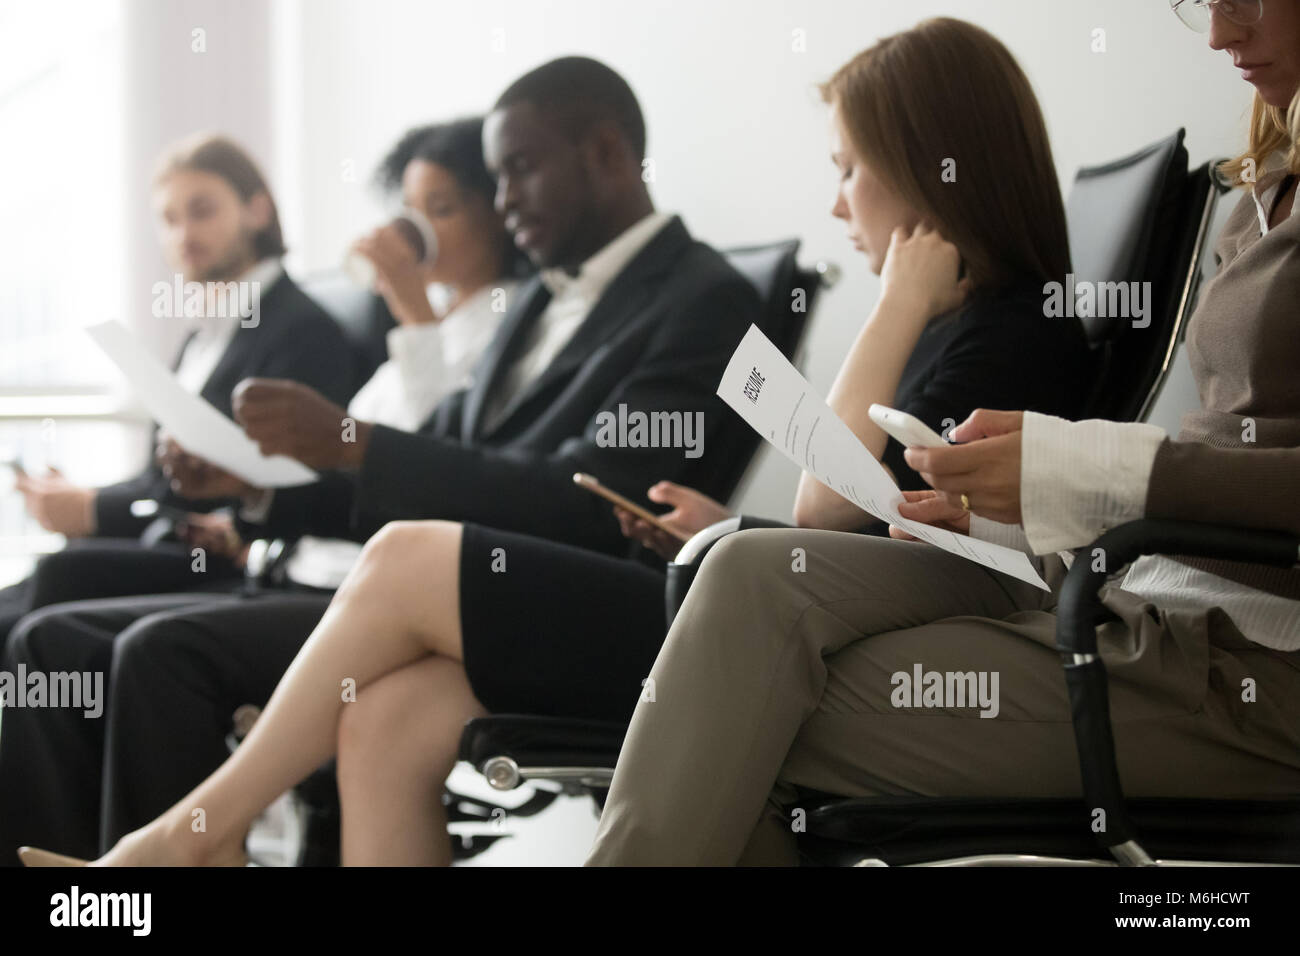 Multi-ethnic applicants sitting in queue waiting for job intervi - Stock Image